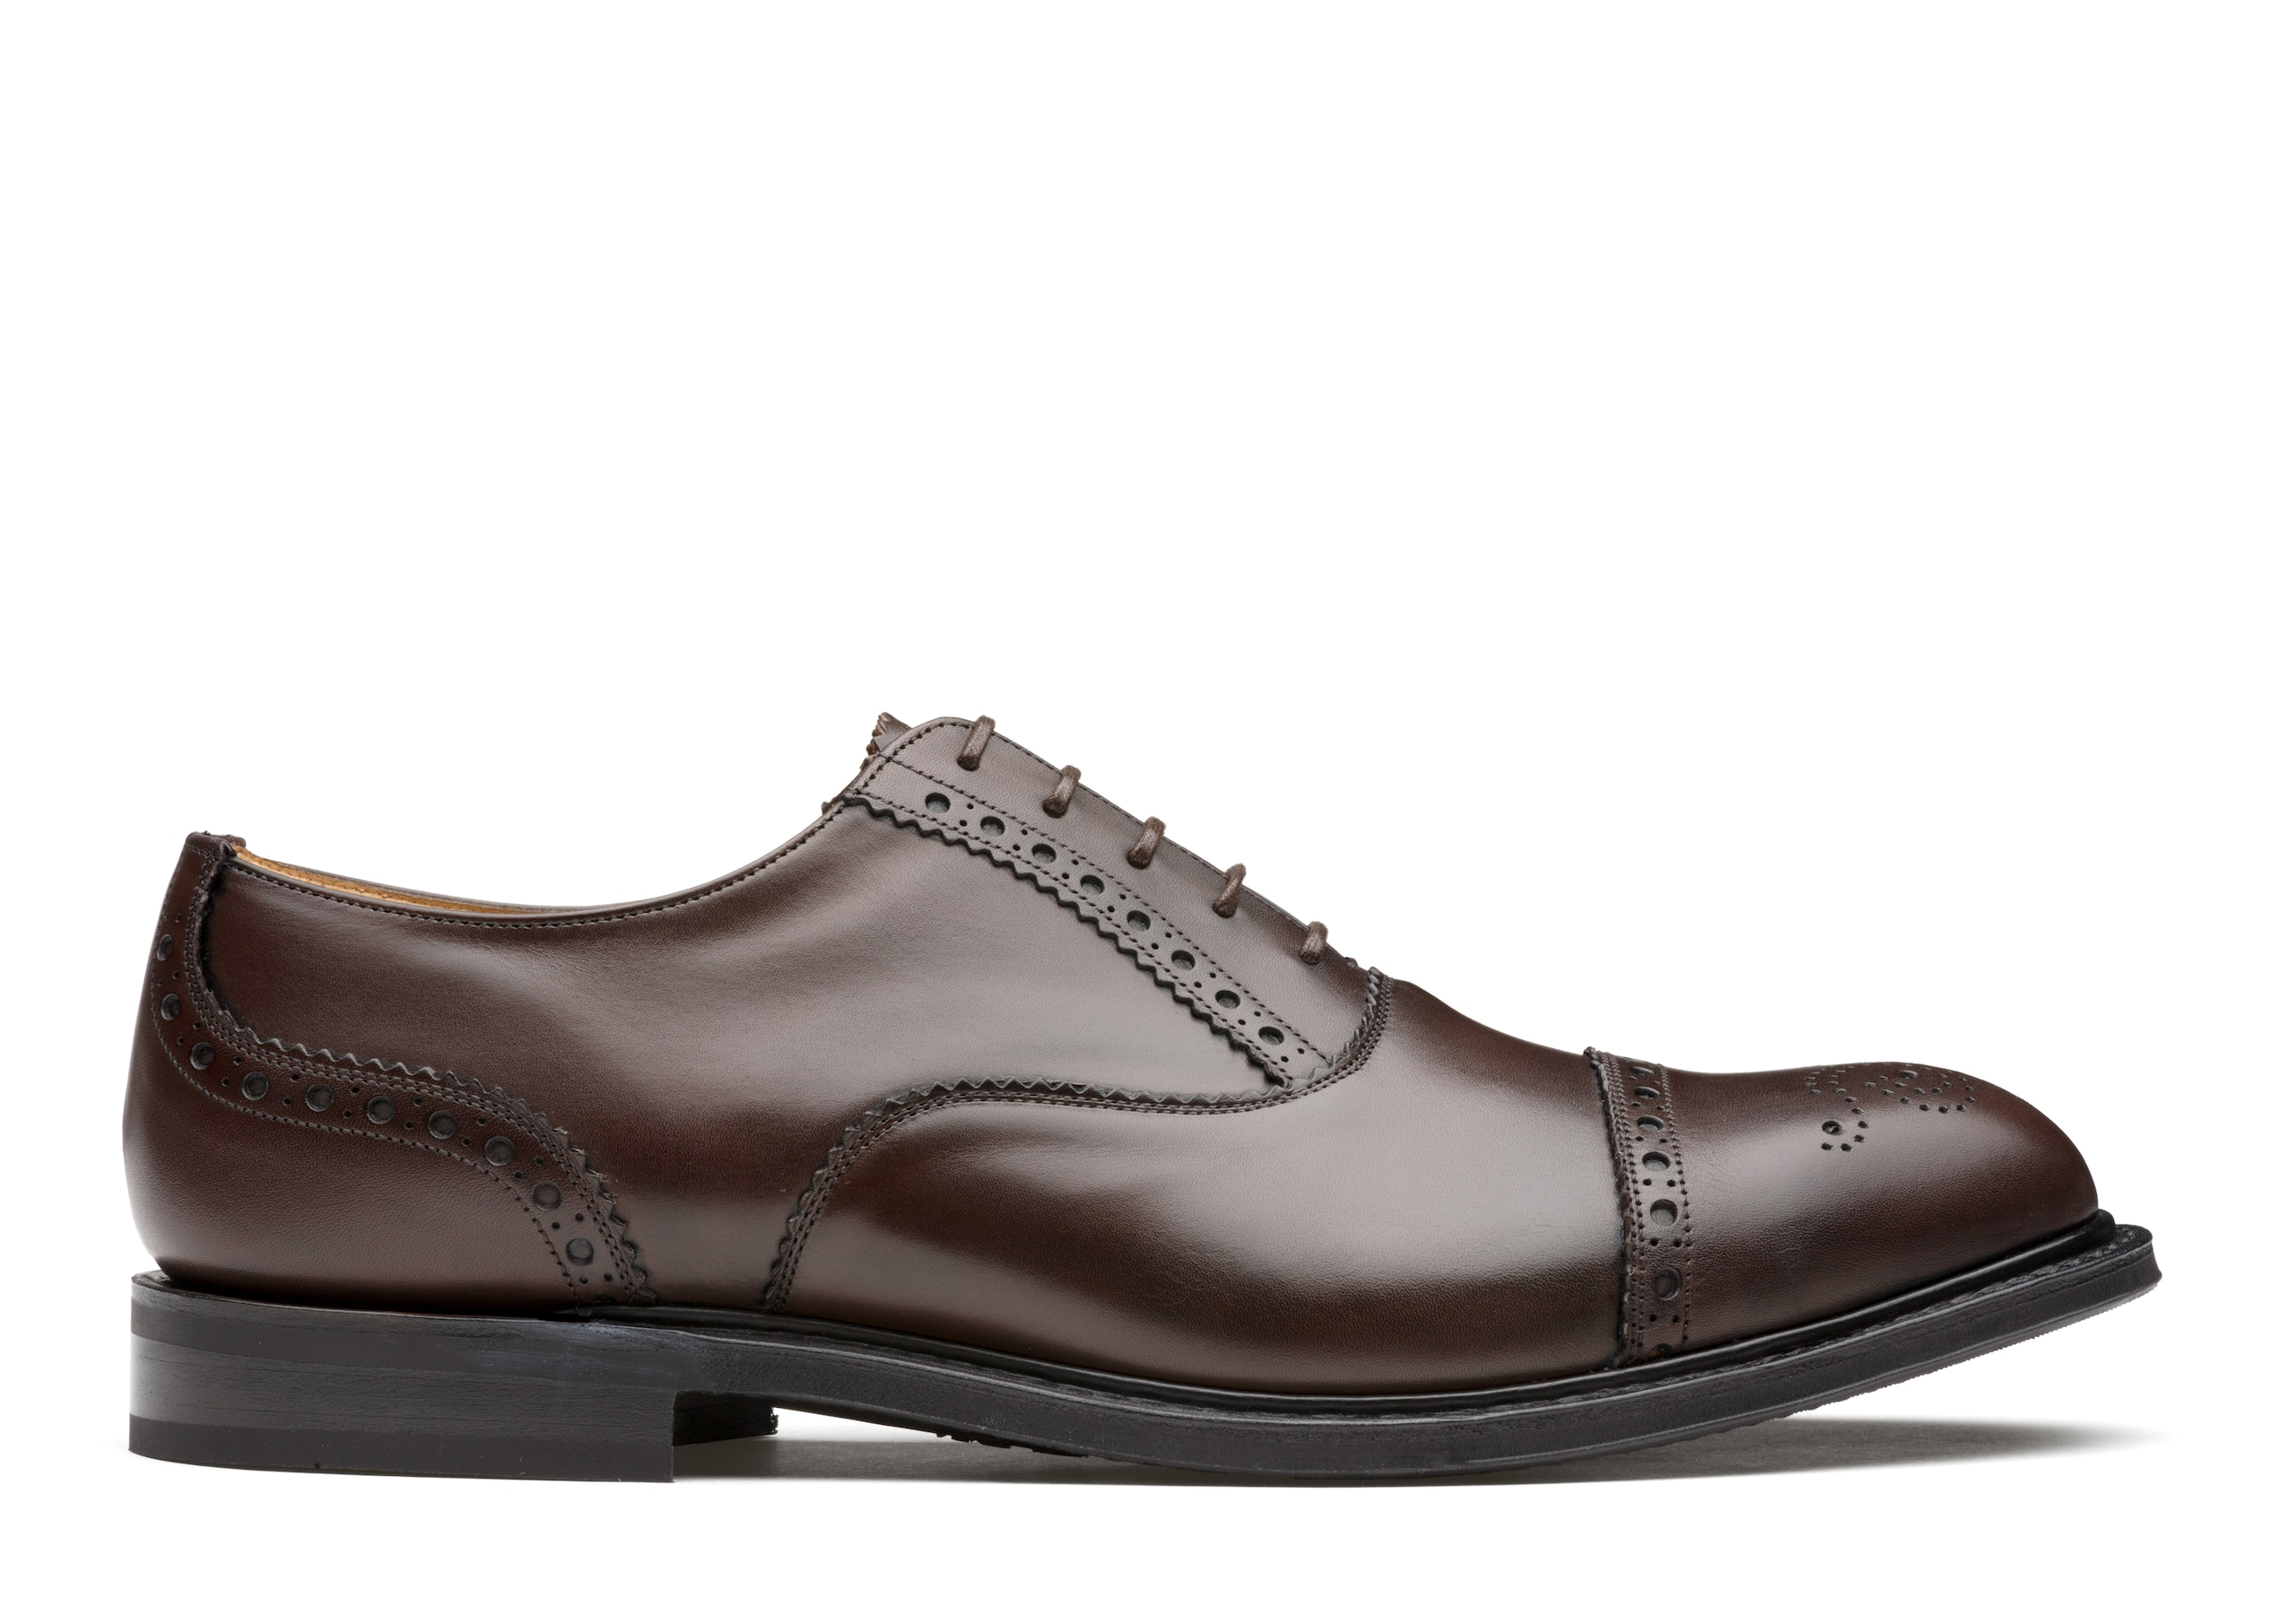 Waltham Church's Oxford Brogue in Pelle Nevada Marrone